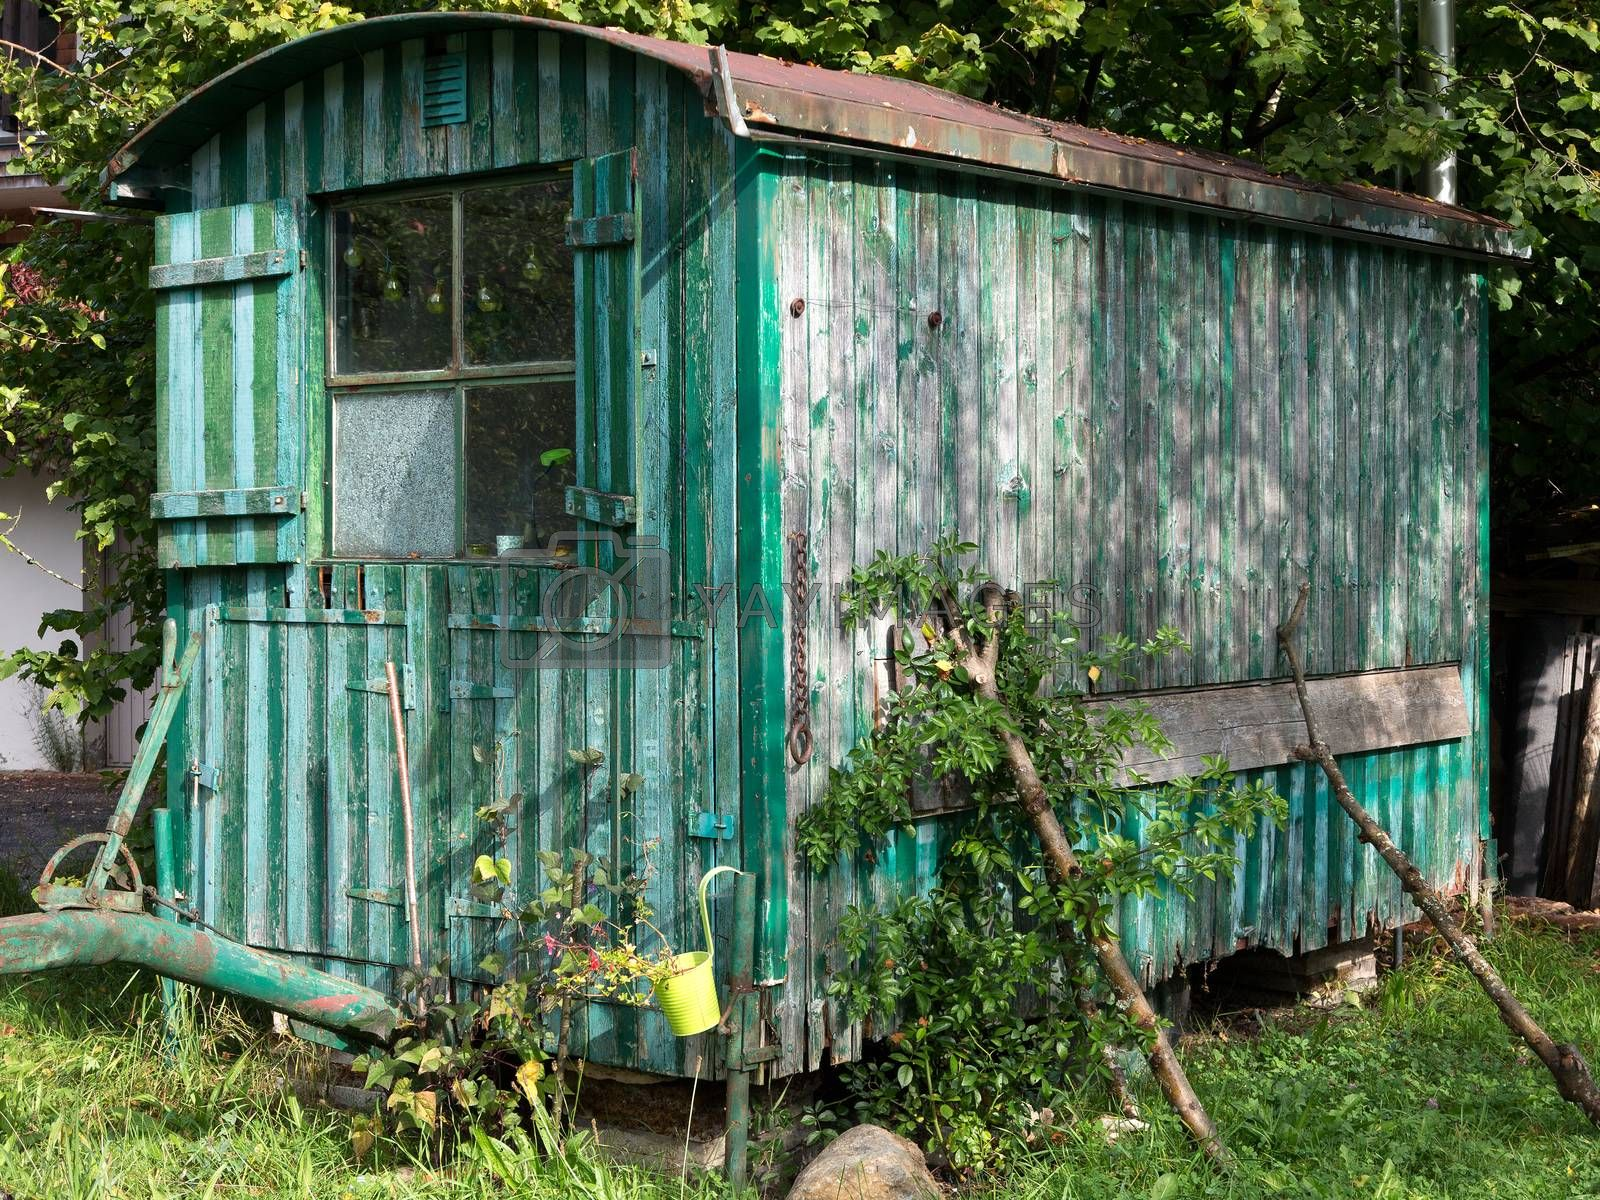 Royalty free image of Old weathered wooden contractor's shed in the garden by Kasparart